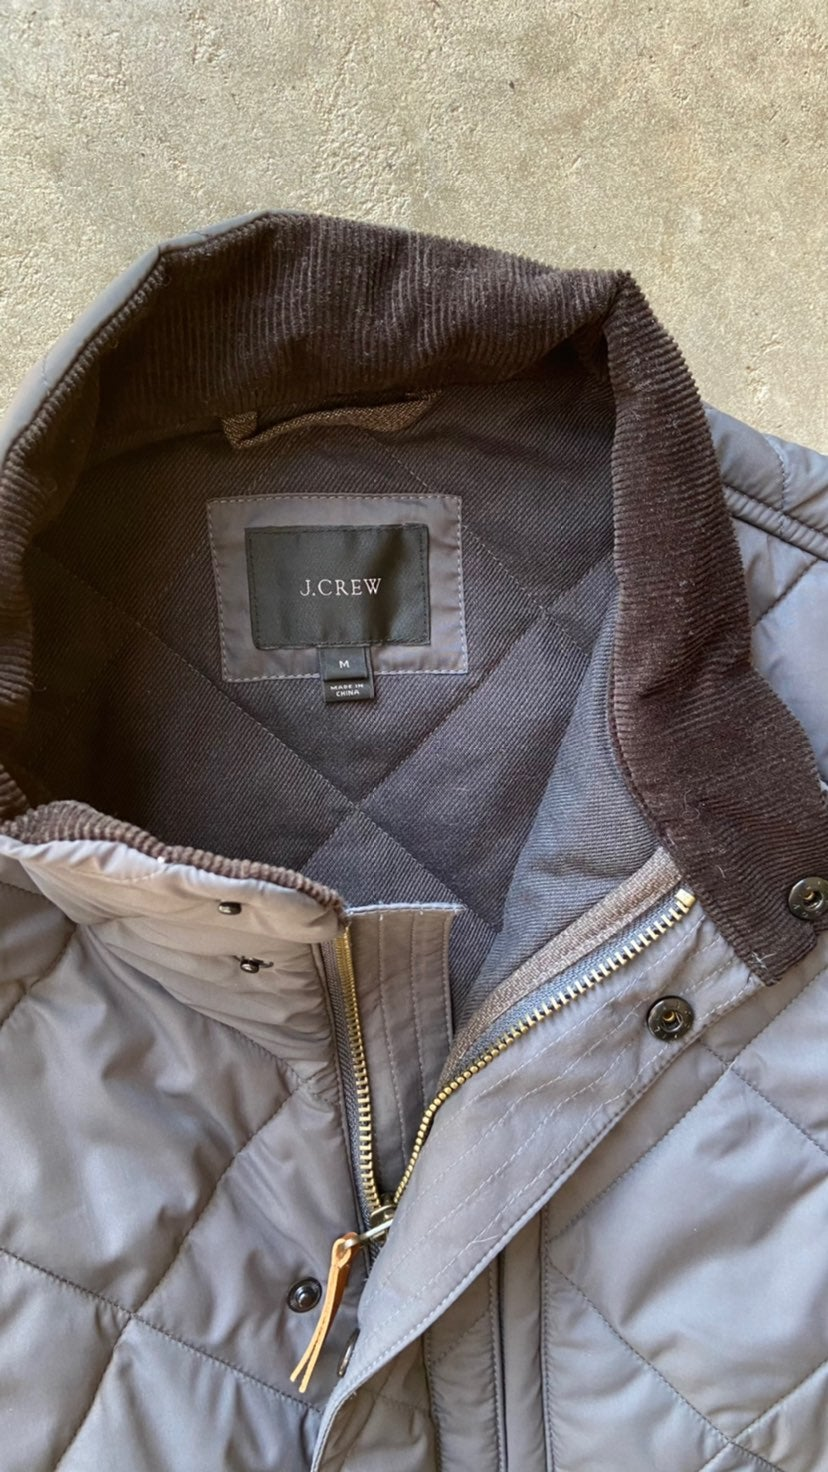 Jacket from J Crew Medium